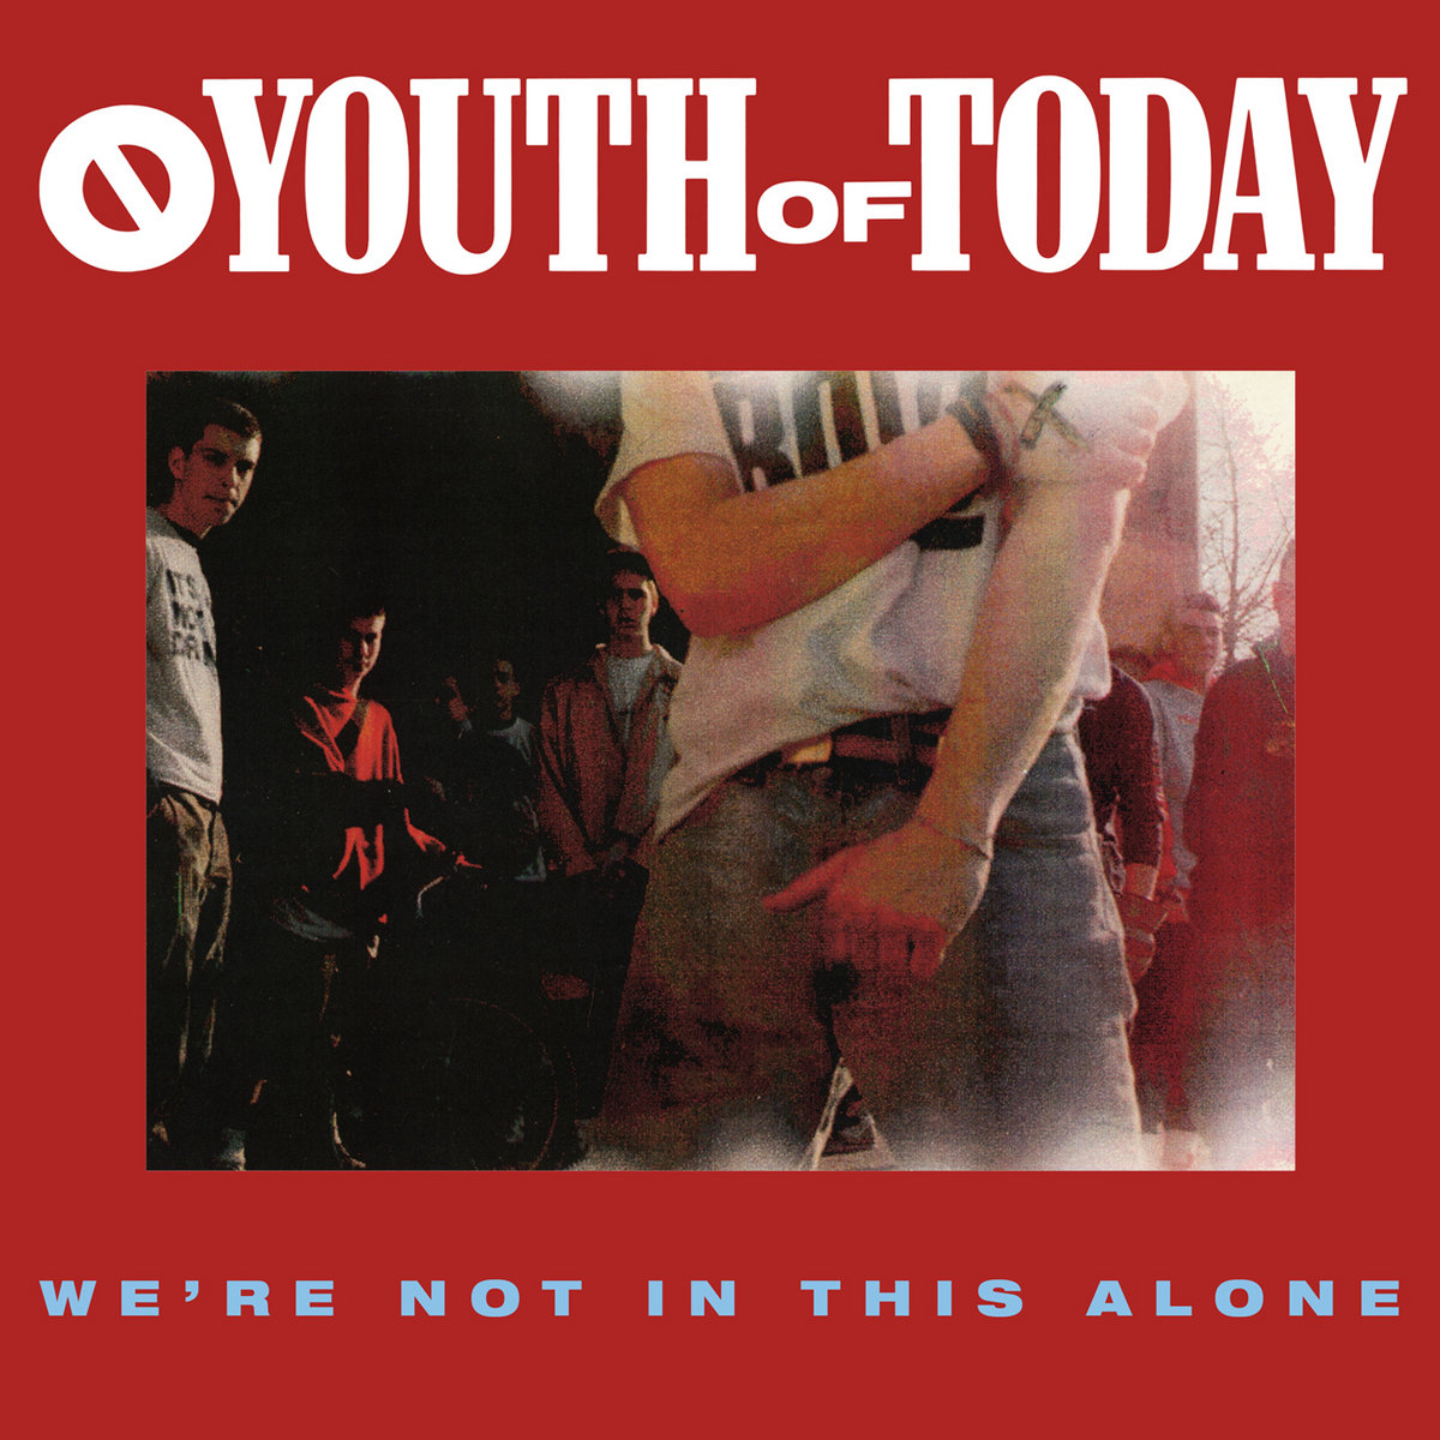 YOUTH OF TODAY - Were Not In This Alone LP Color Vinyl